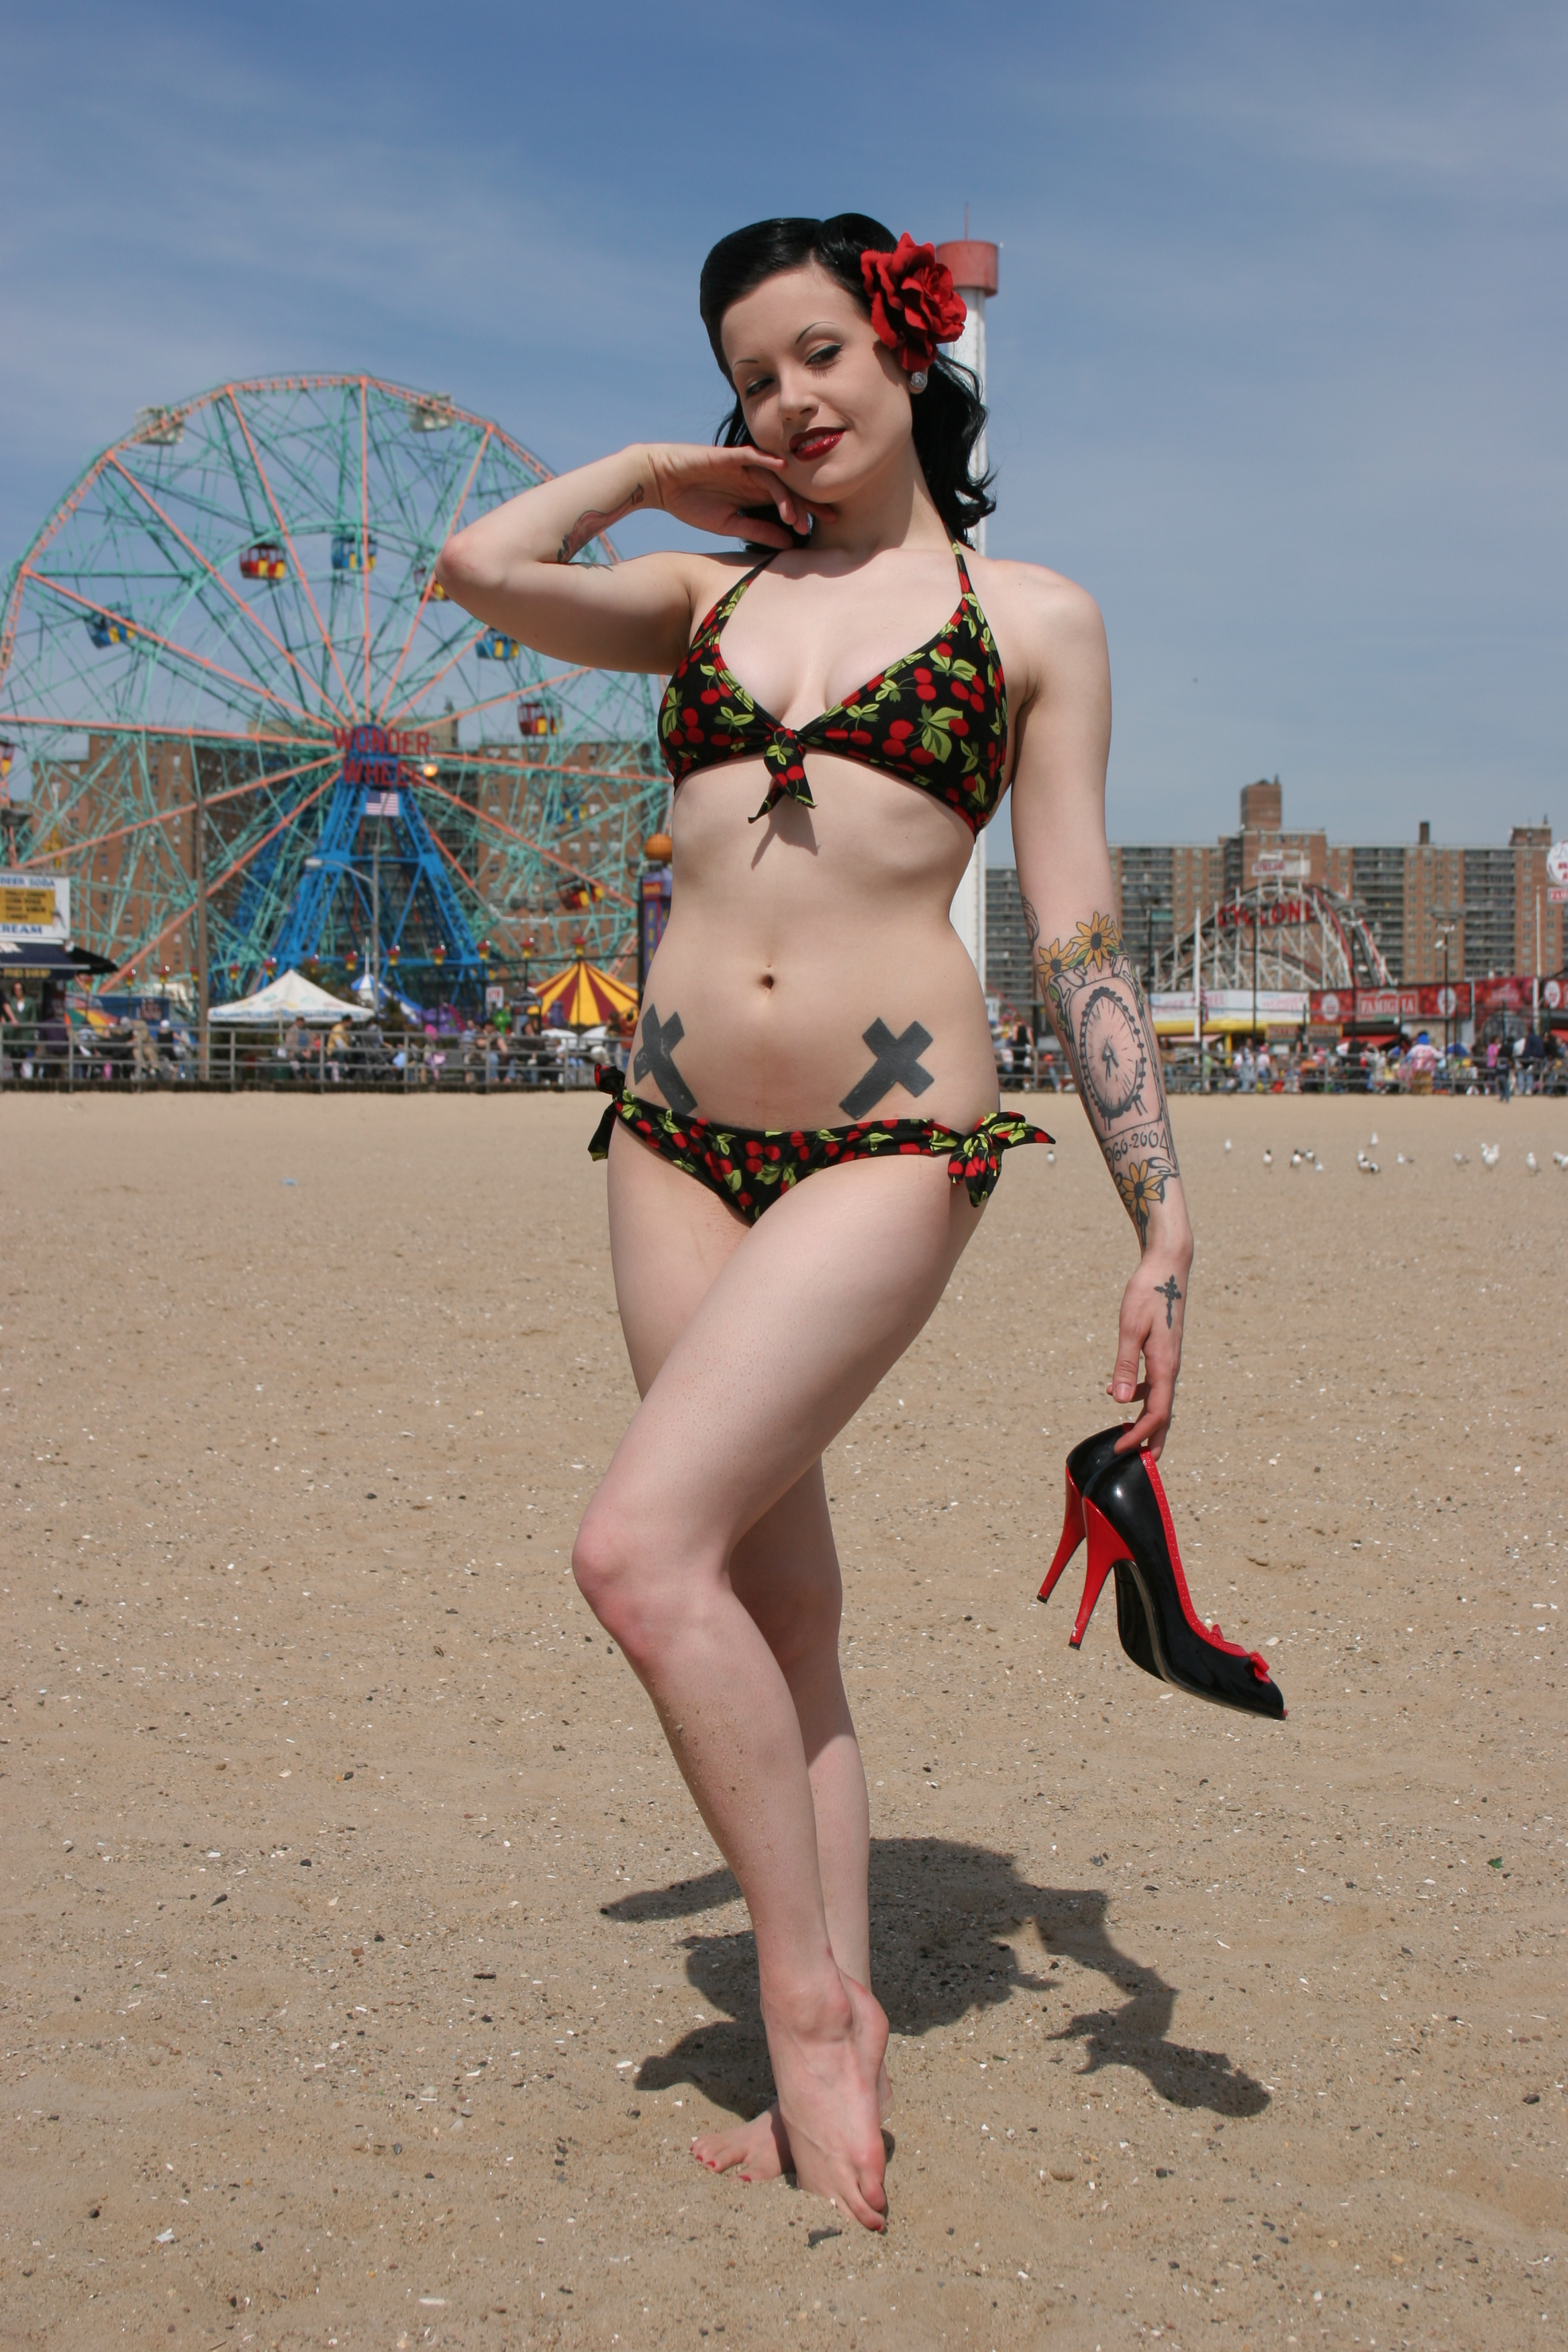 Keywords: sexy shoes heels pinup new york coney island pin up red shoes high